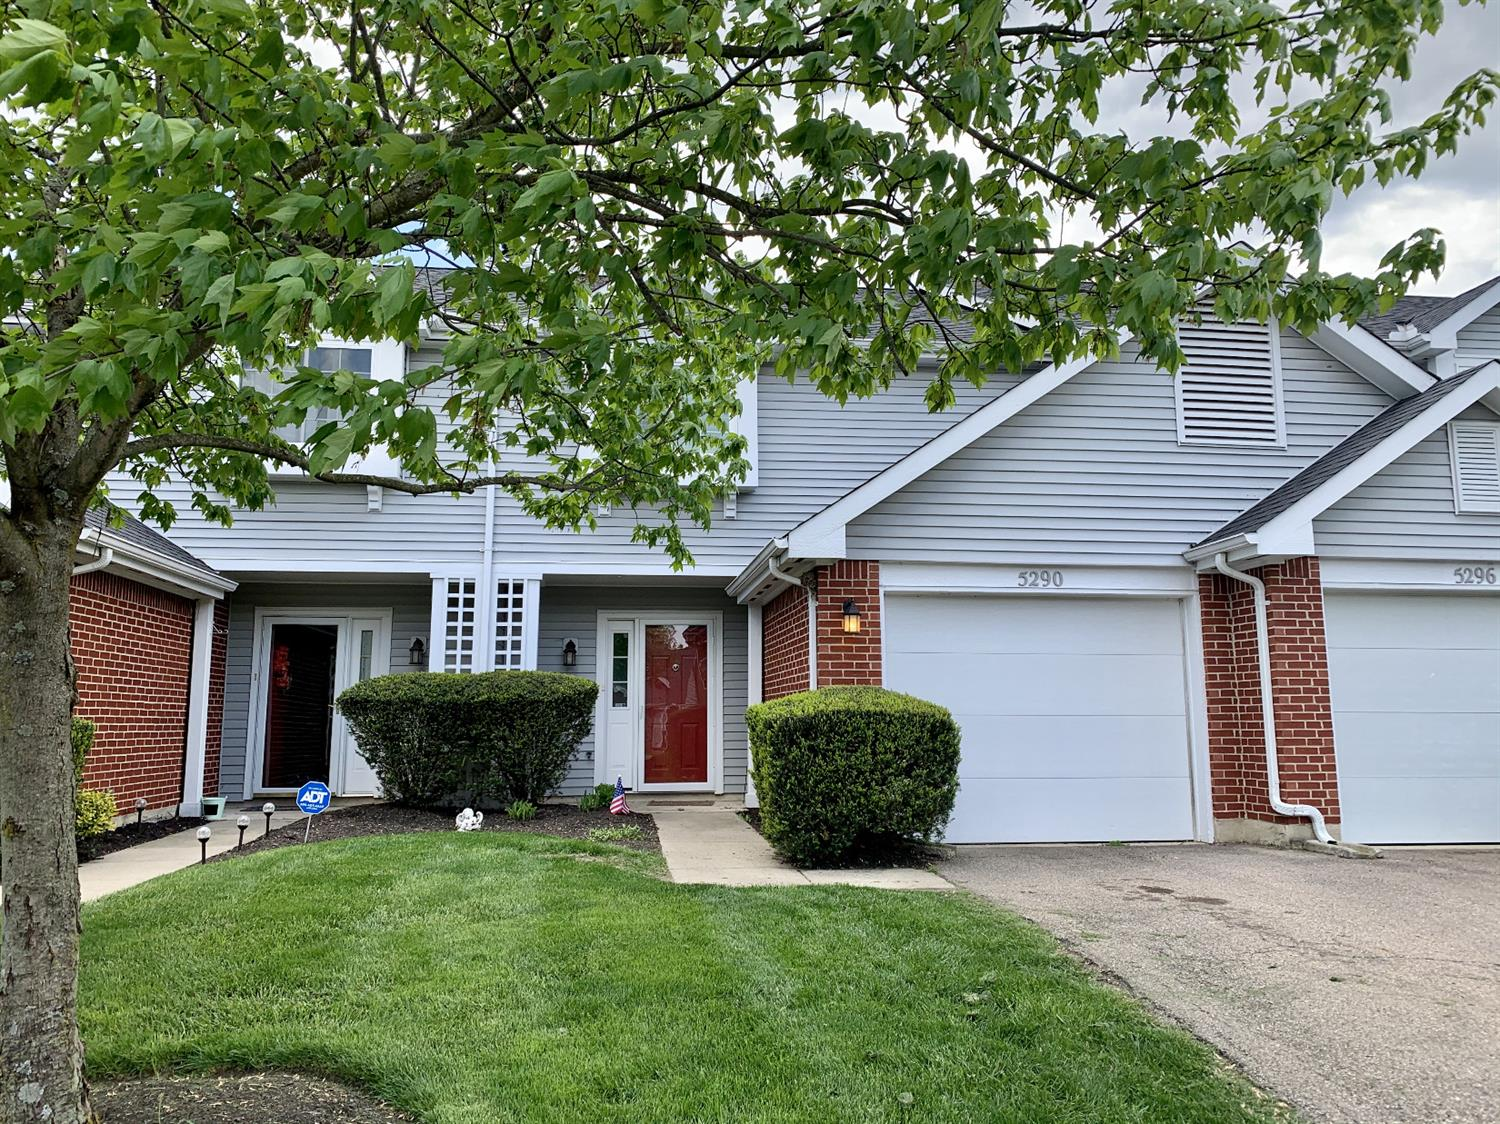 Property for sale at 5290 Bay Pointe Drive, Mason,  Ohio 45040